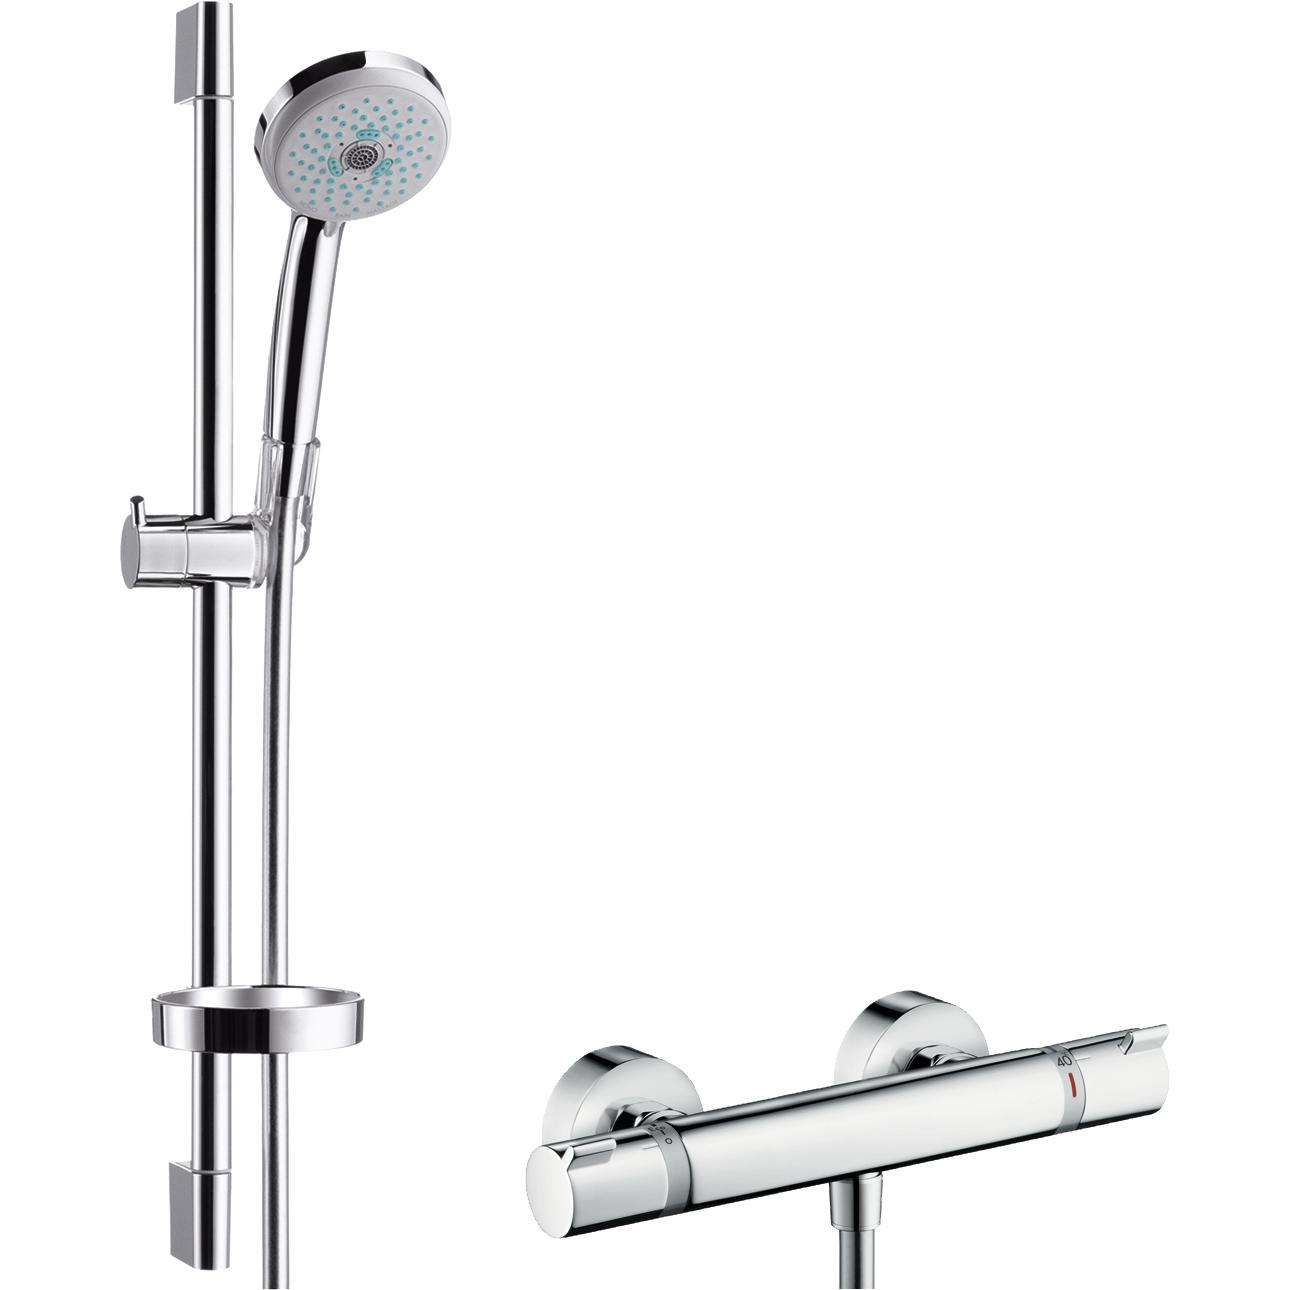 Duschset Hansgrohe Croma 100